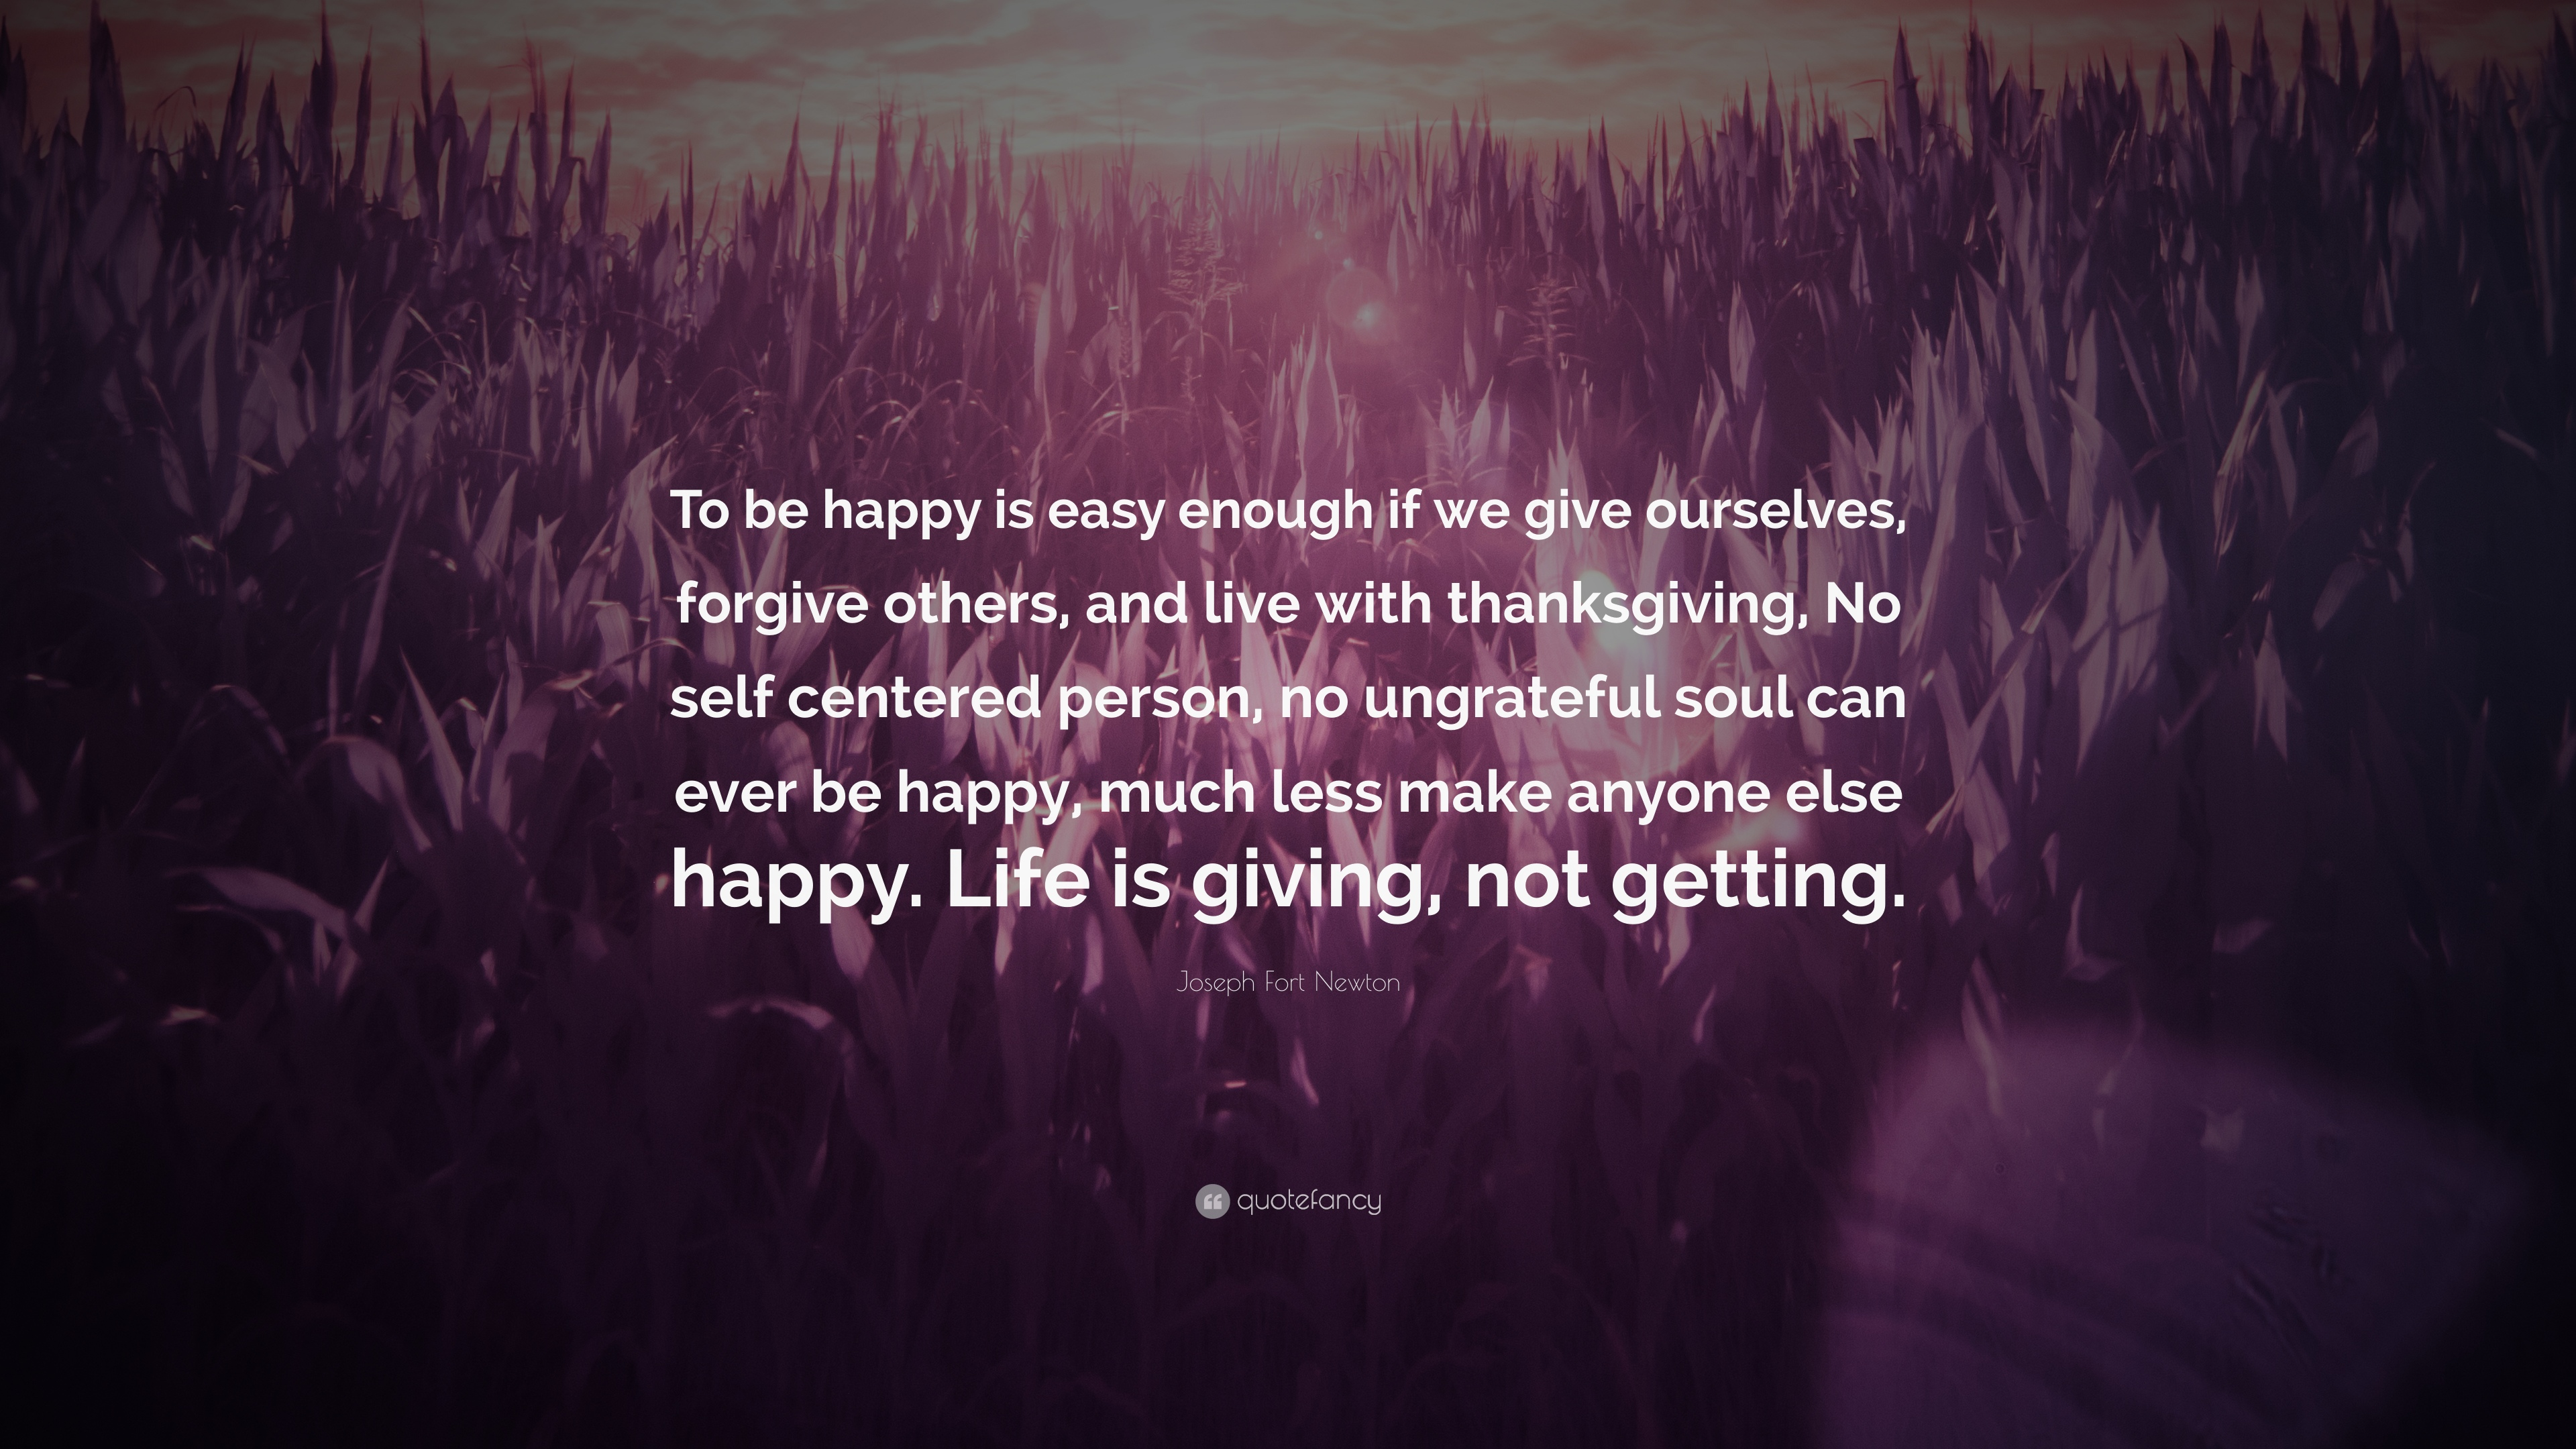 Joseph Fort Newton Quote To Be Happy Is Easy Enough If We Give